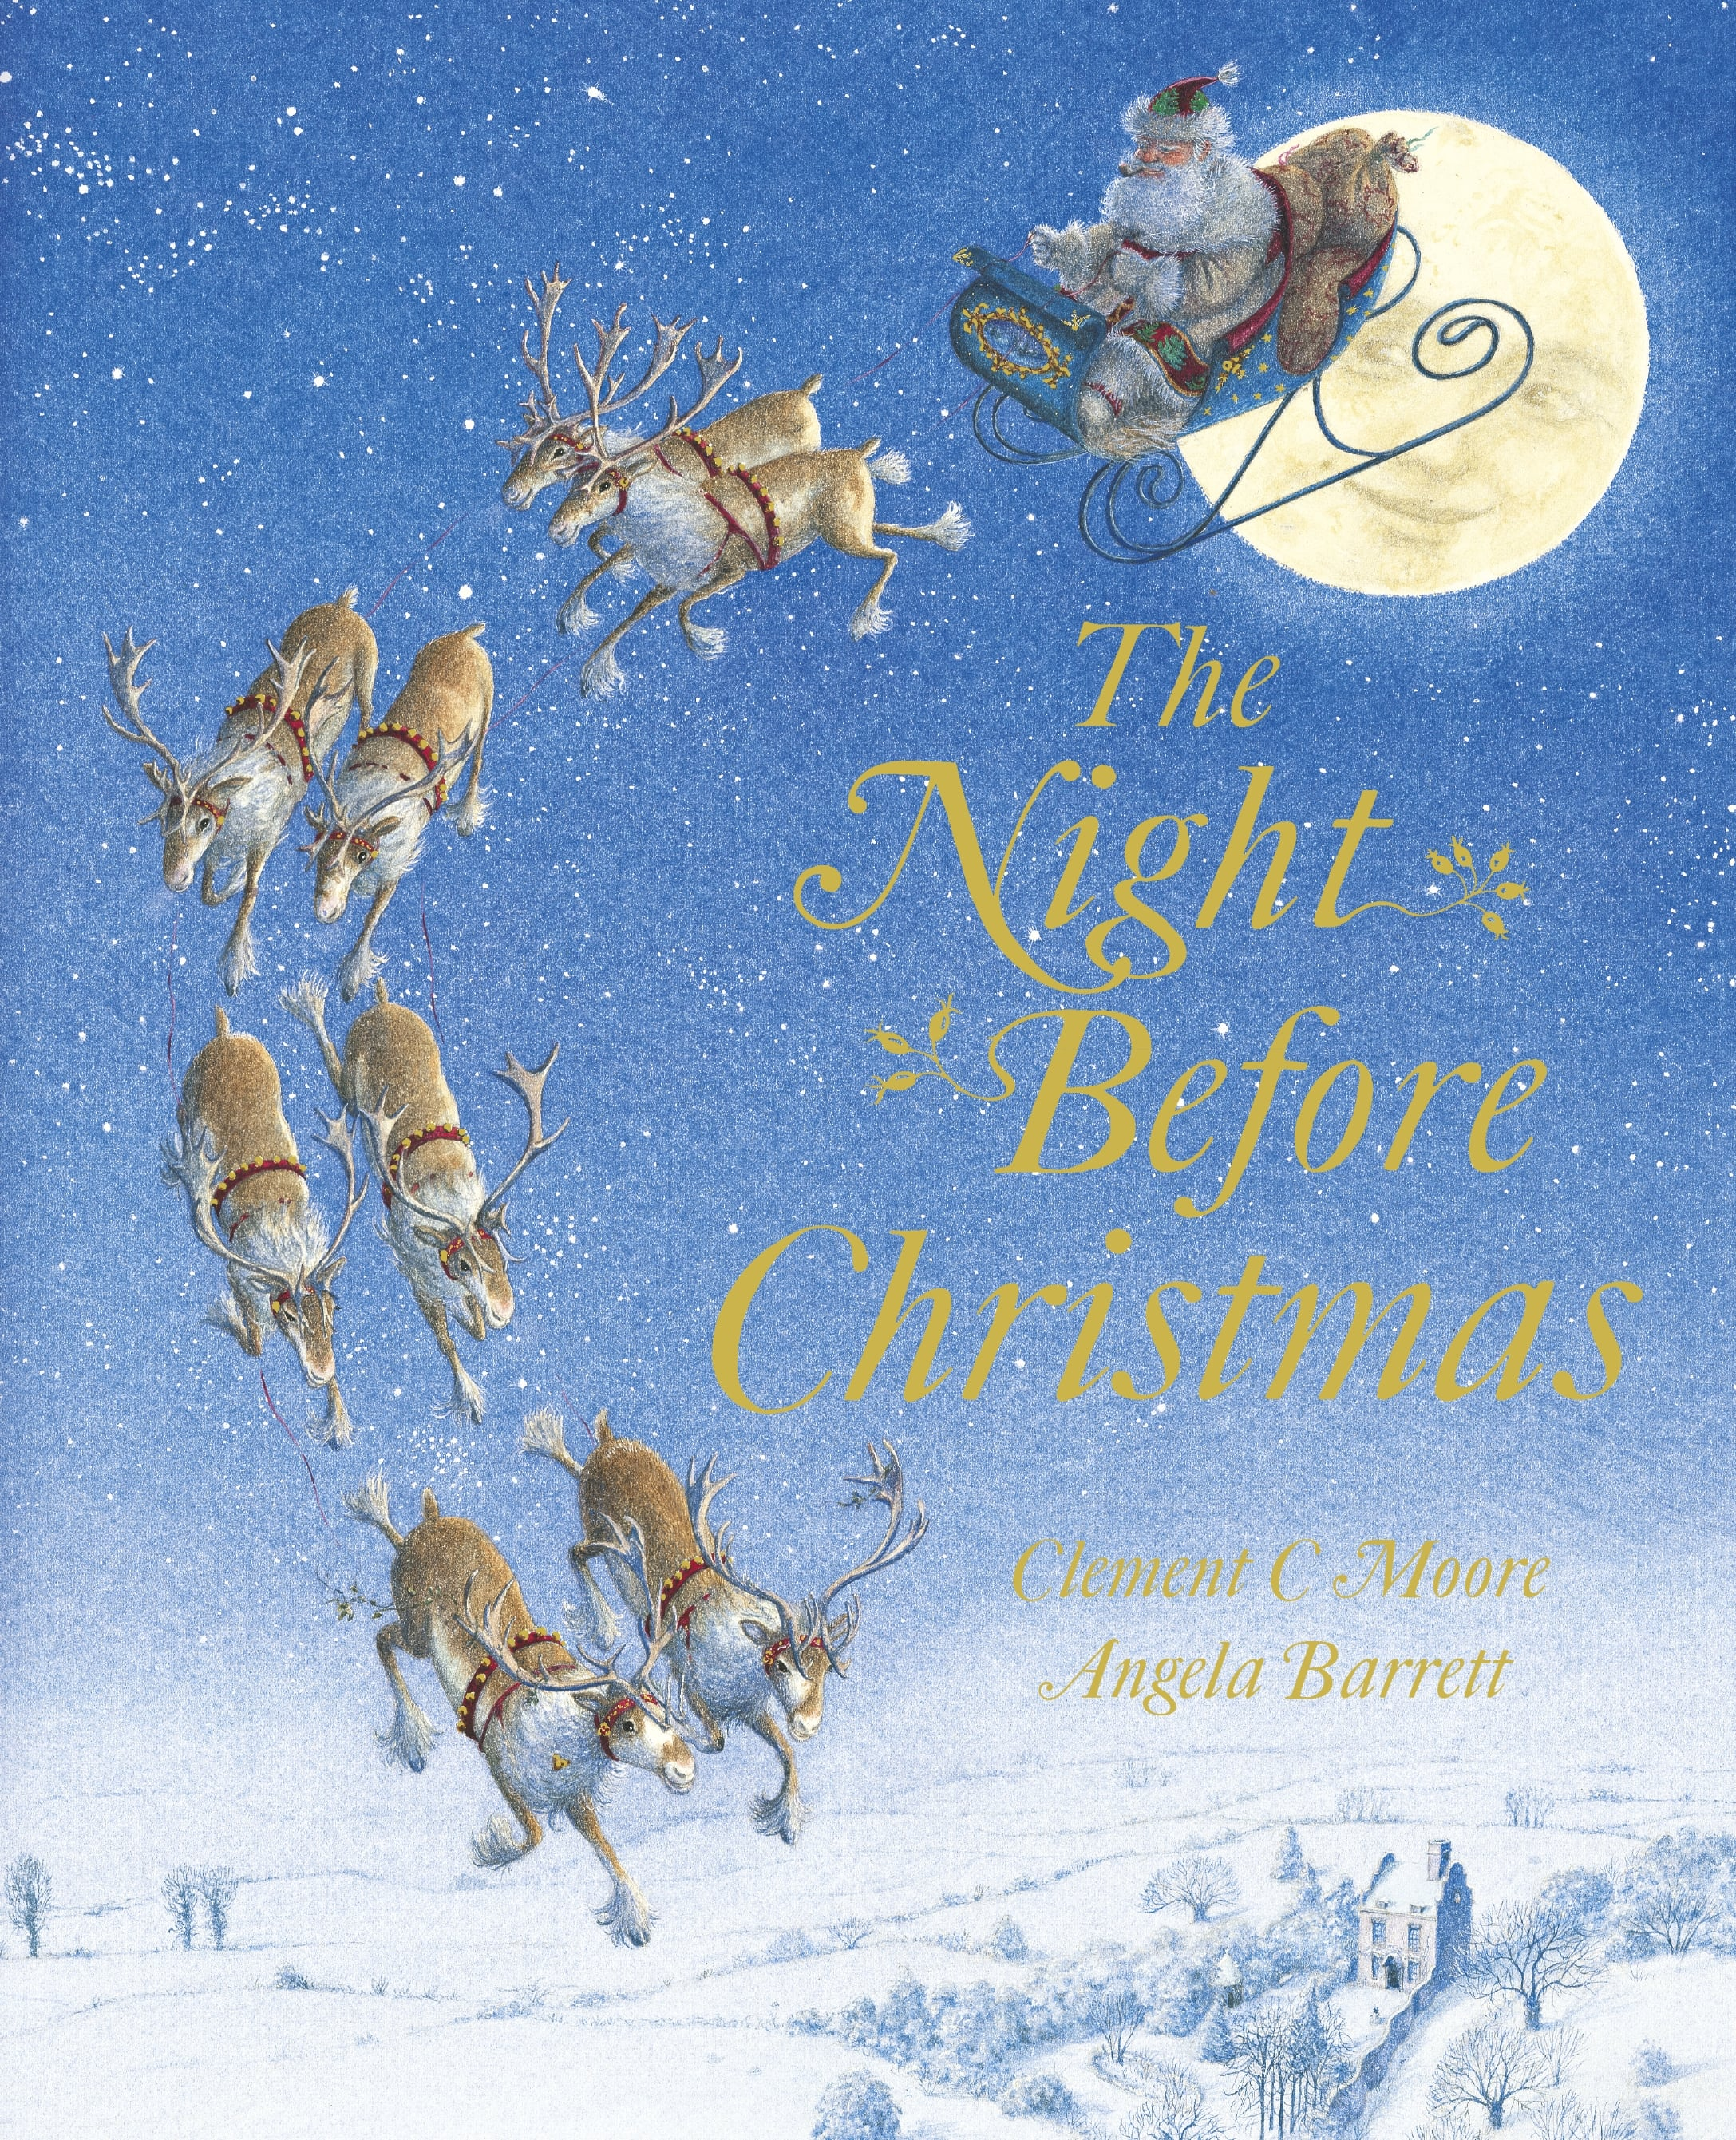 night before christmas by clement c moore angela barrett - Night Before Christmas Book